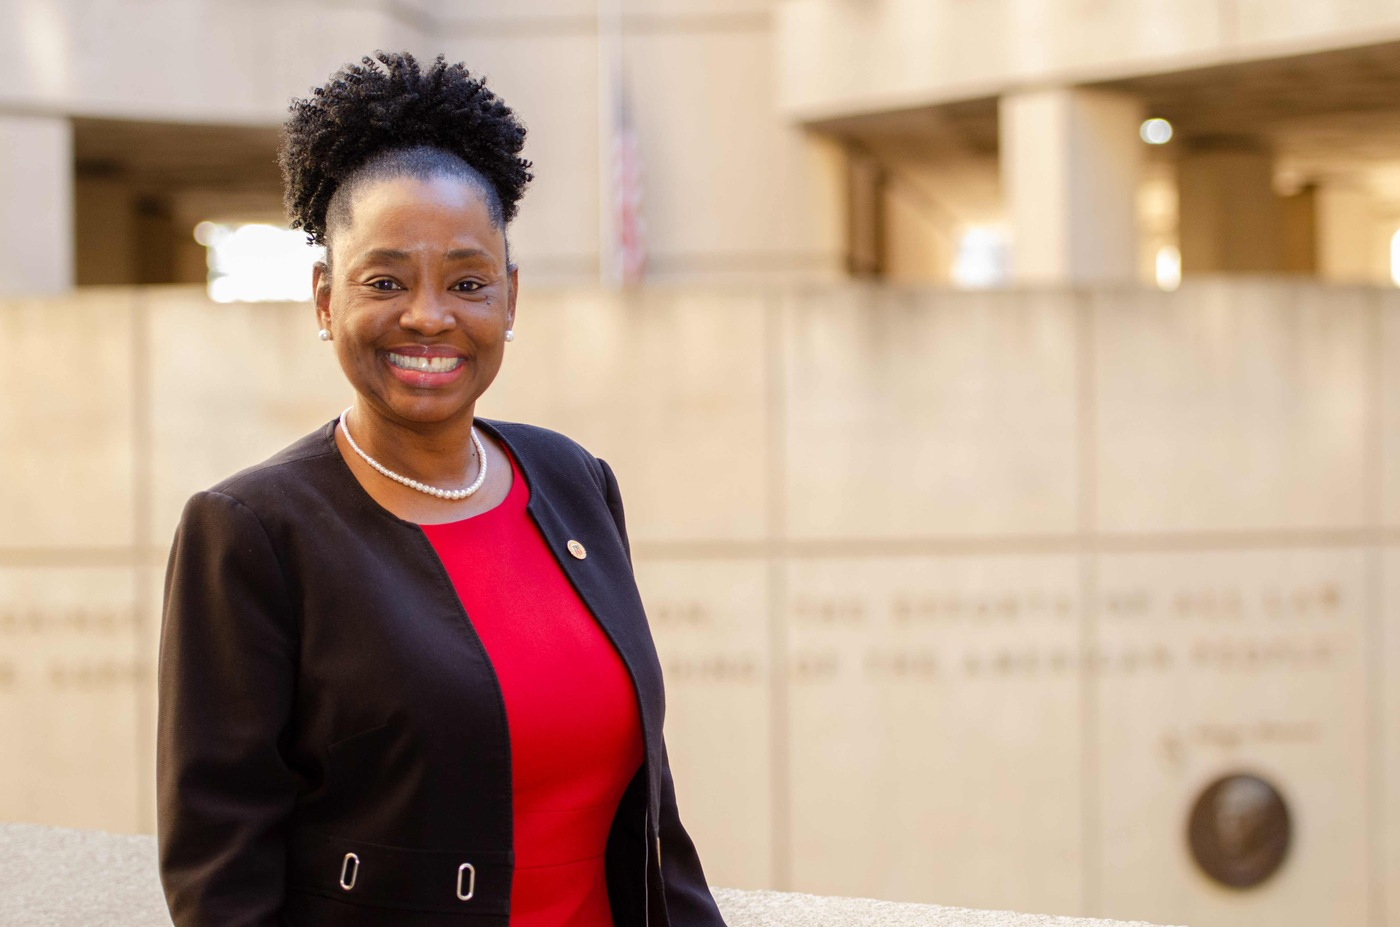 Assistant Director A. Tonya Odom served as the FBI's first chief diversity officer.